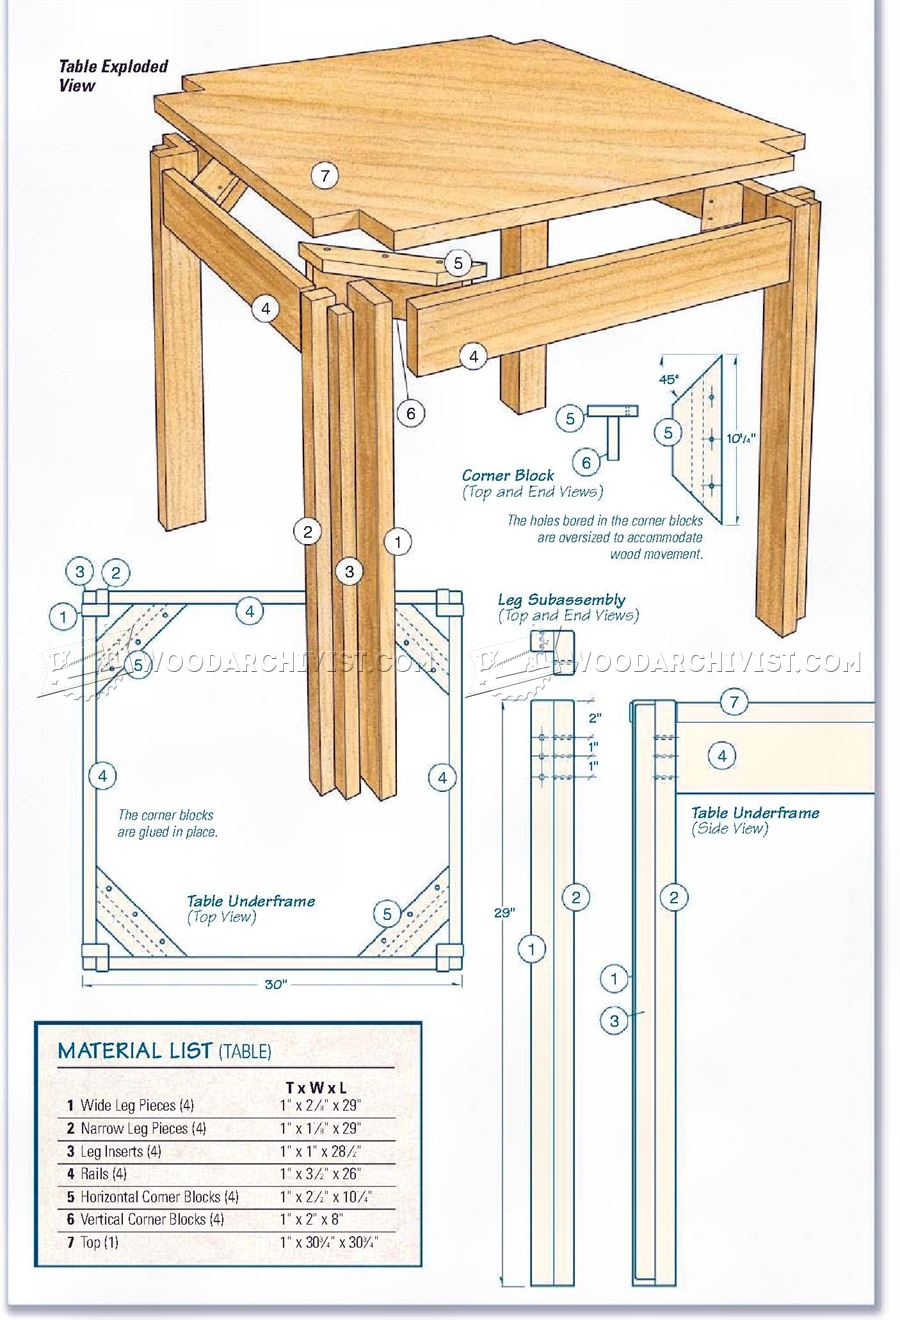 Kitchen table and bench plans woodarchivist - Wood kitchen table plans ...